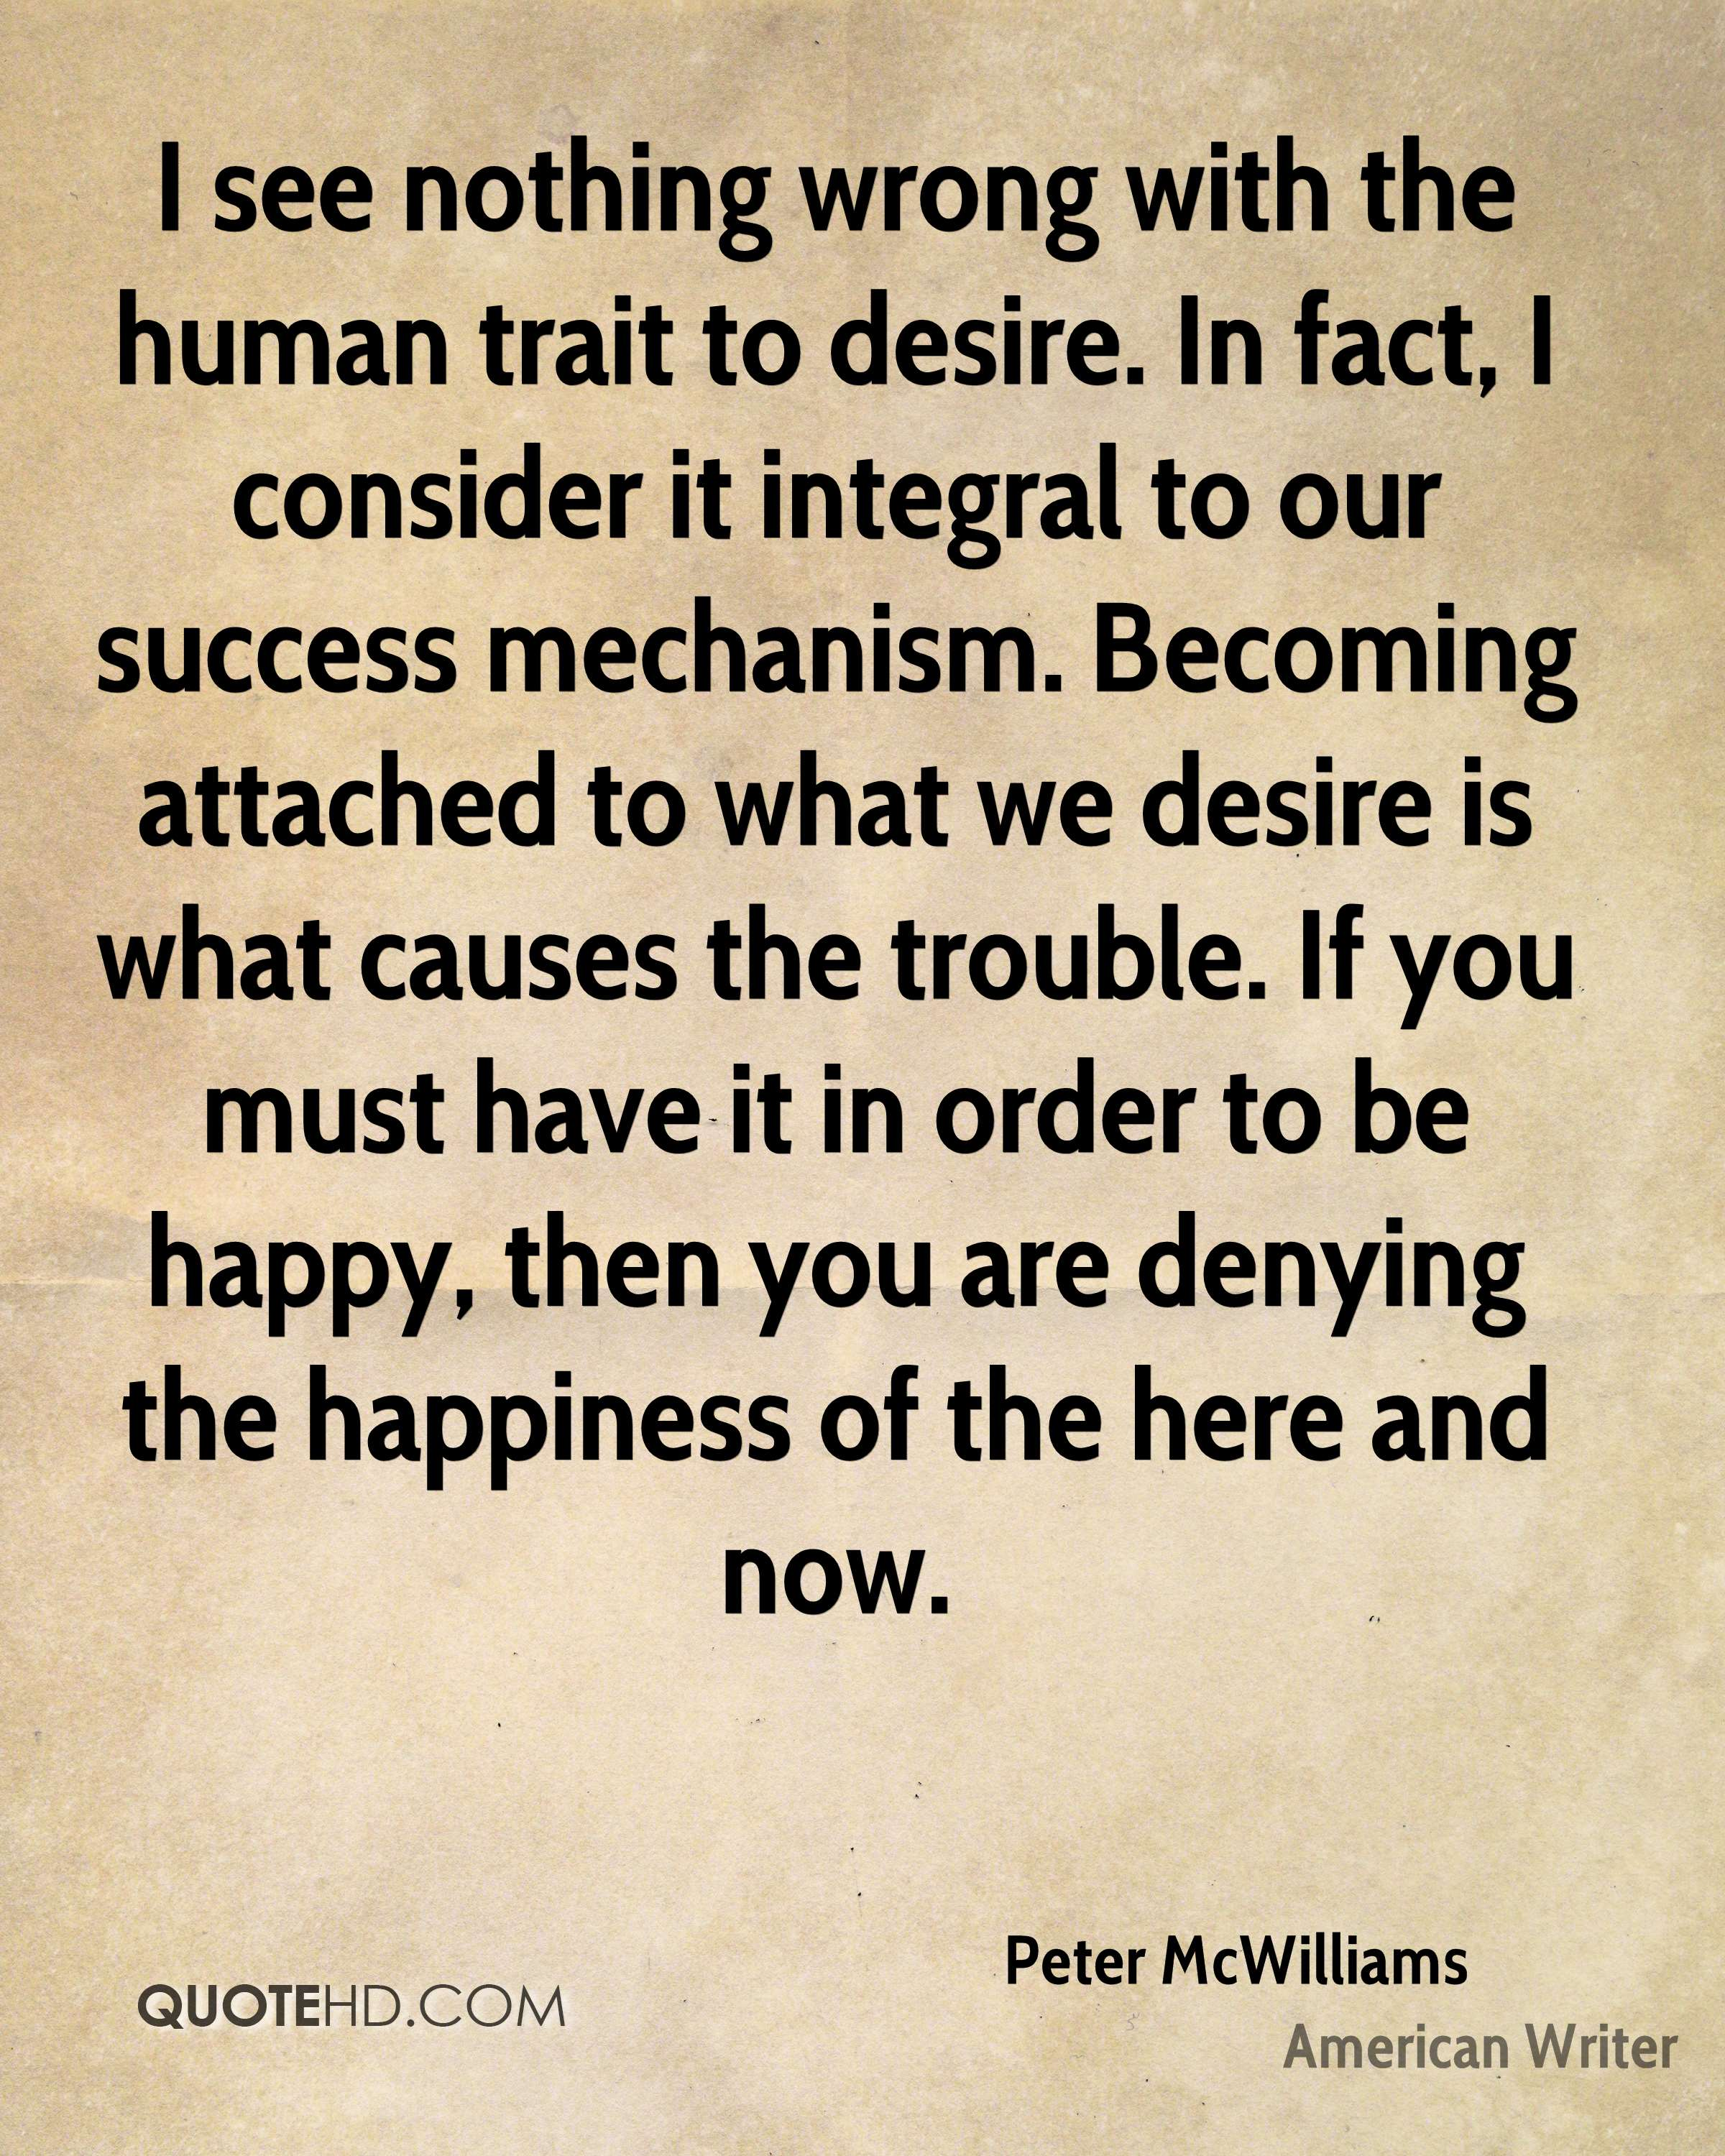 I see nothing wrong with the human trait to desire. In fact, I consider it integral to our success mechanism. Becoming attached to what we desire is what causes the trouble. If you must have it in order to be happy, then you are denying the happiness of the here and now.